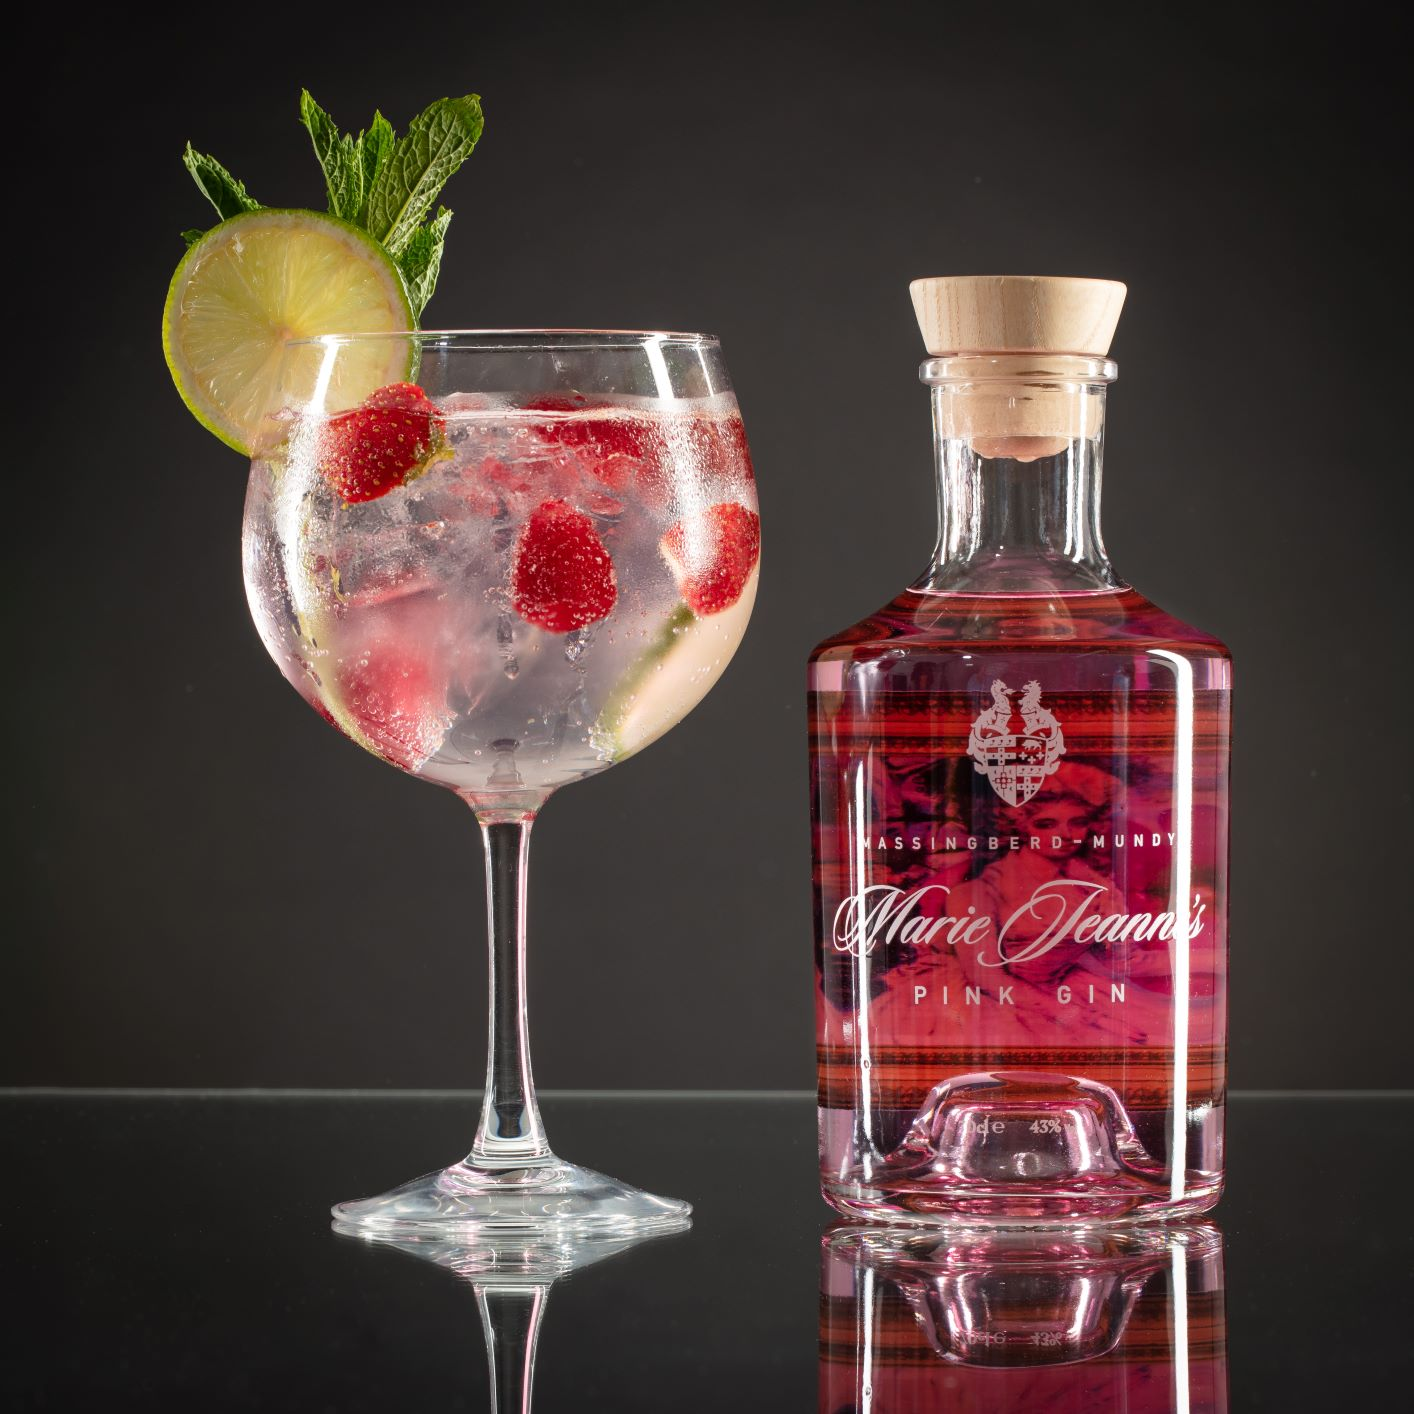 Tickled pink: Lincolnshire gin wins Gold at World Gin Awards